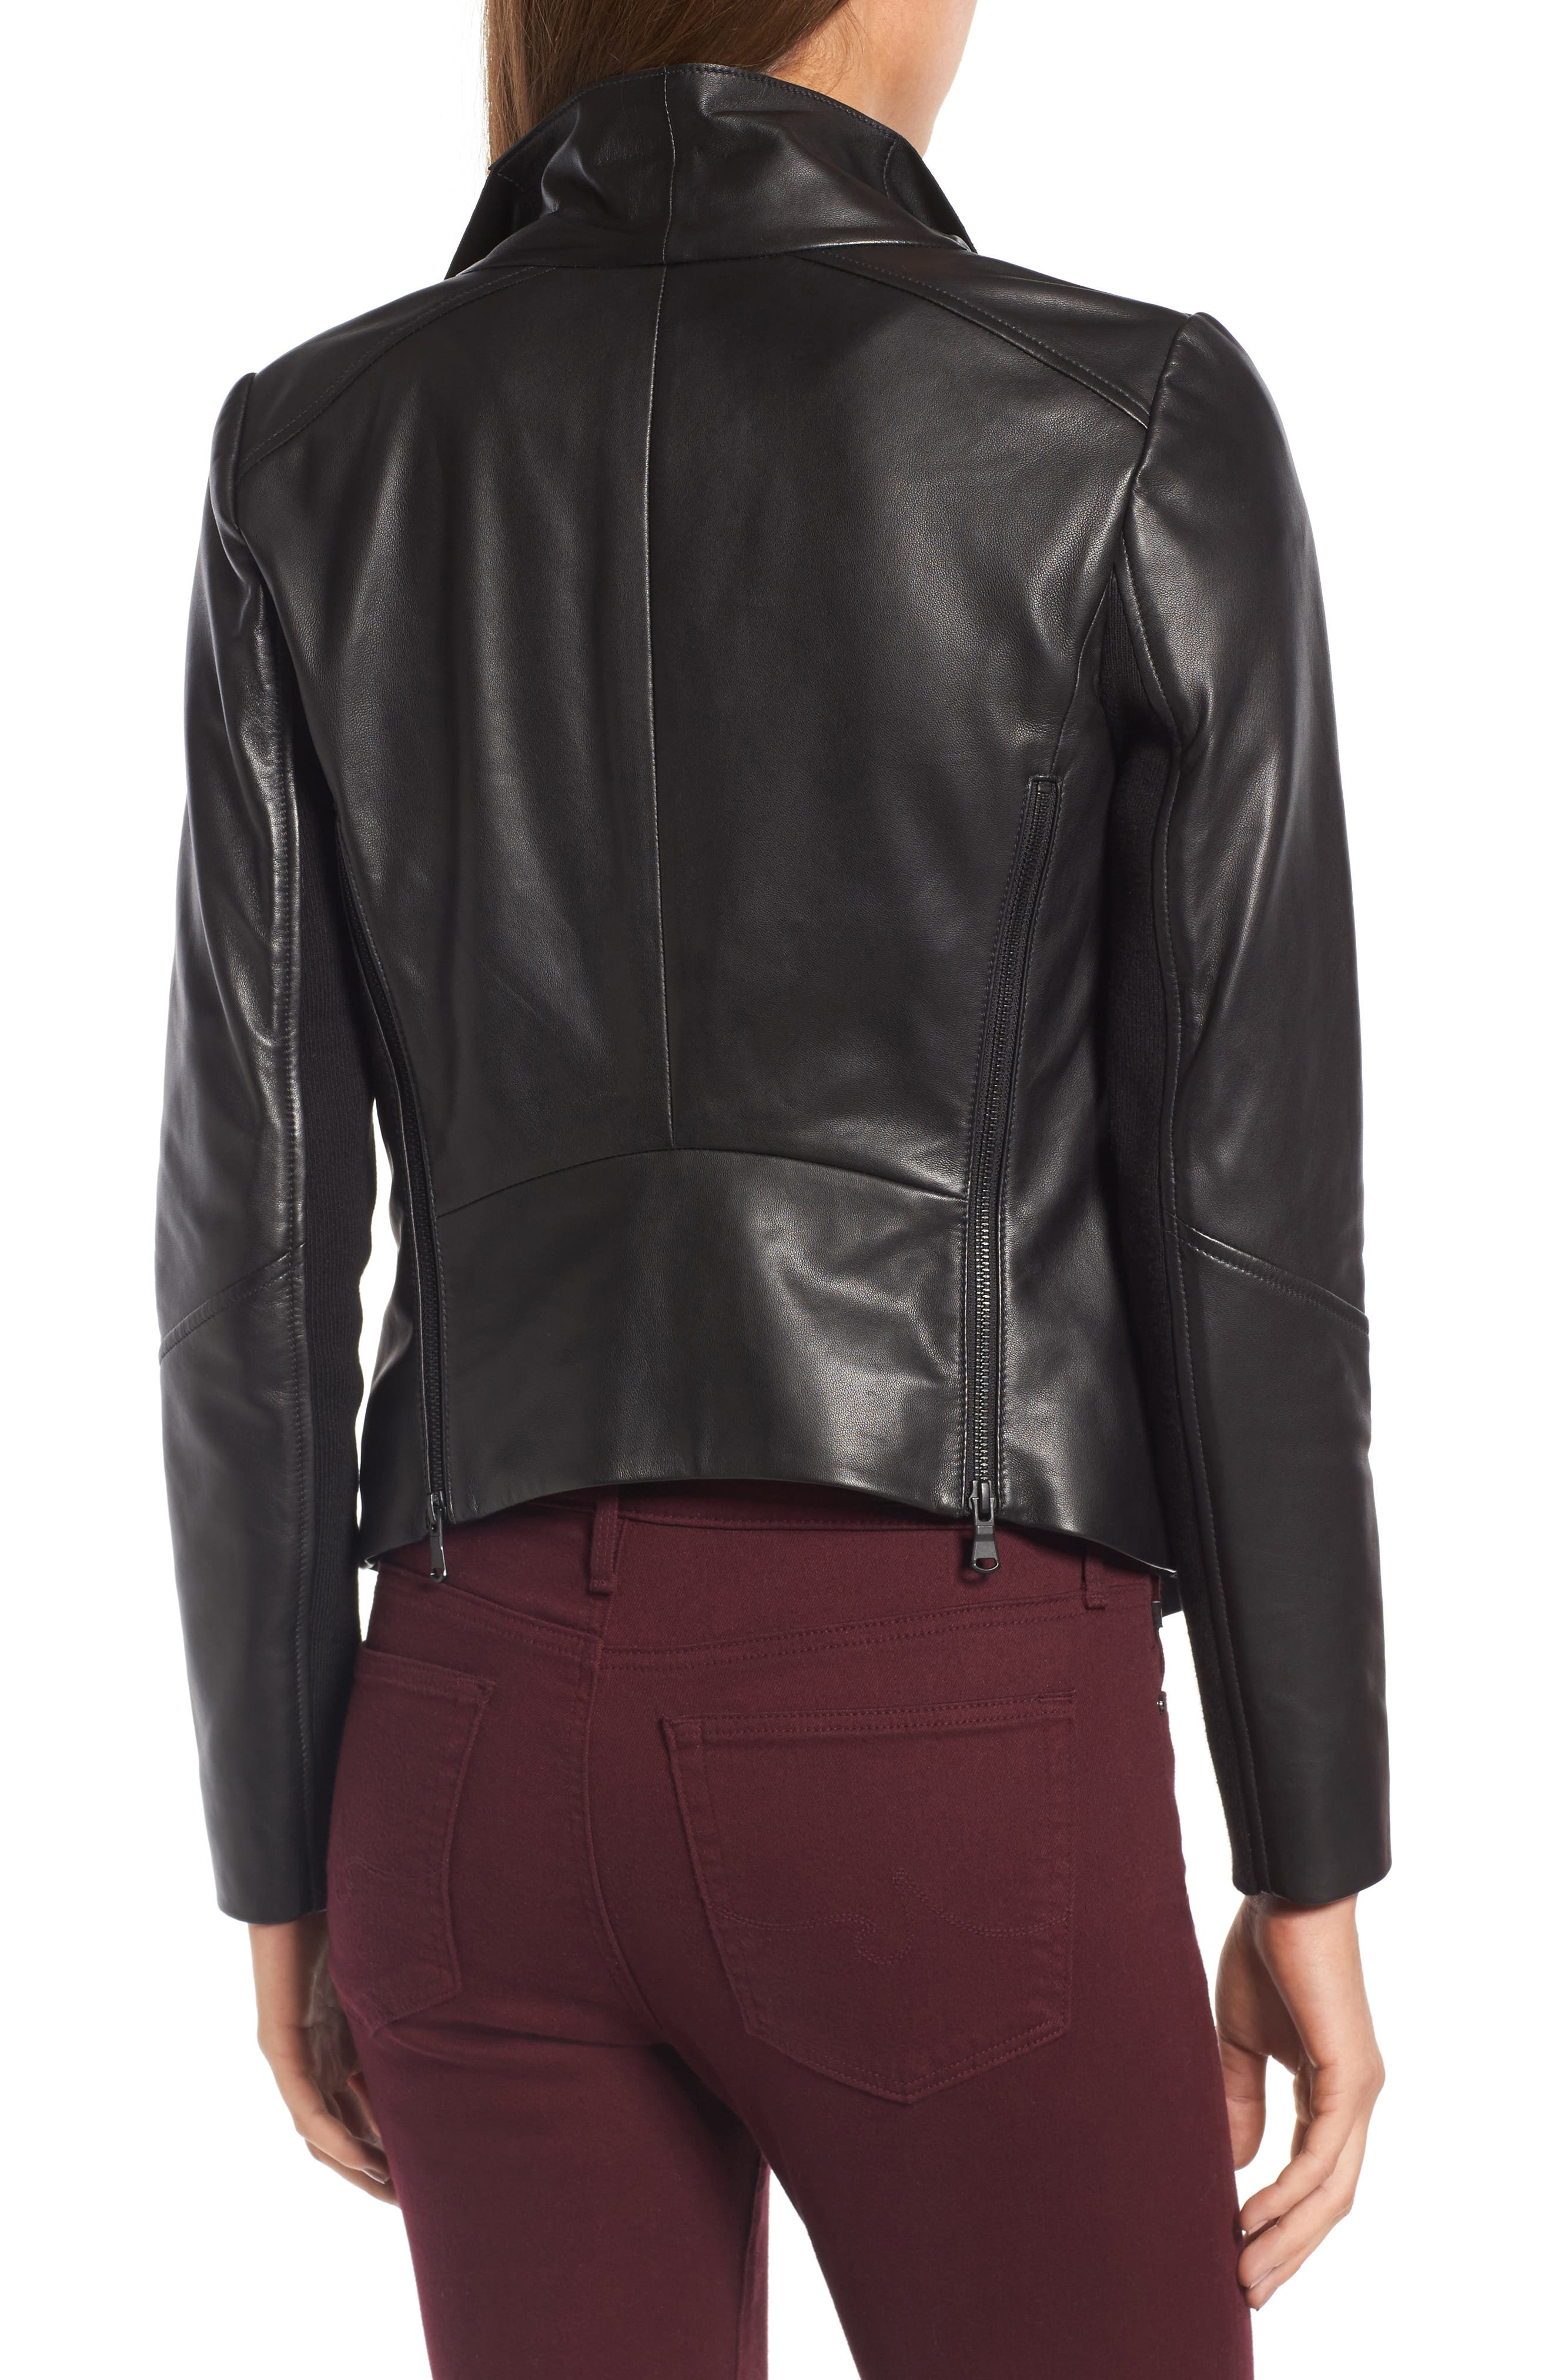 Raw Edge Leather Jacket,                             Alternate thumbnail 2, color,                             001